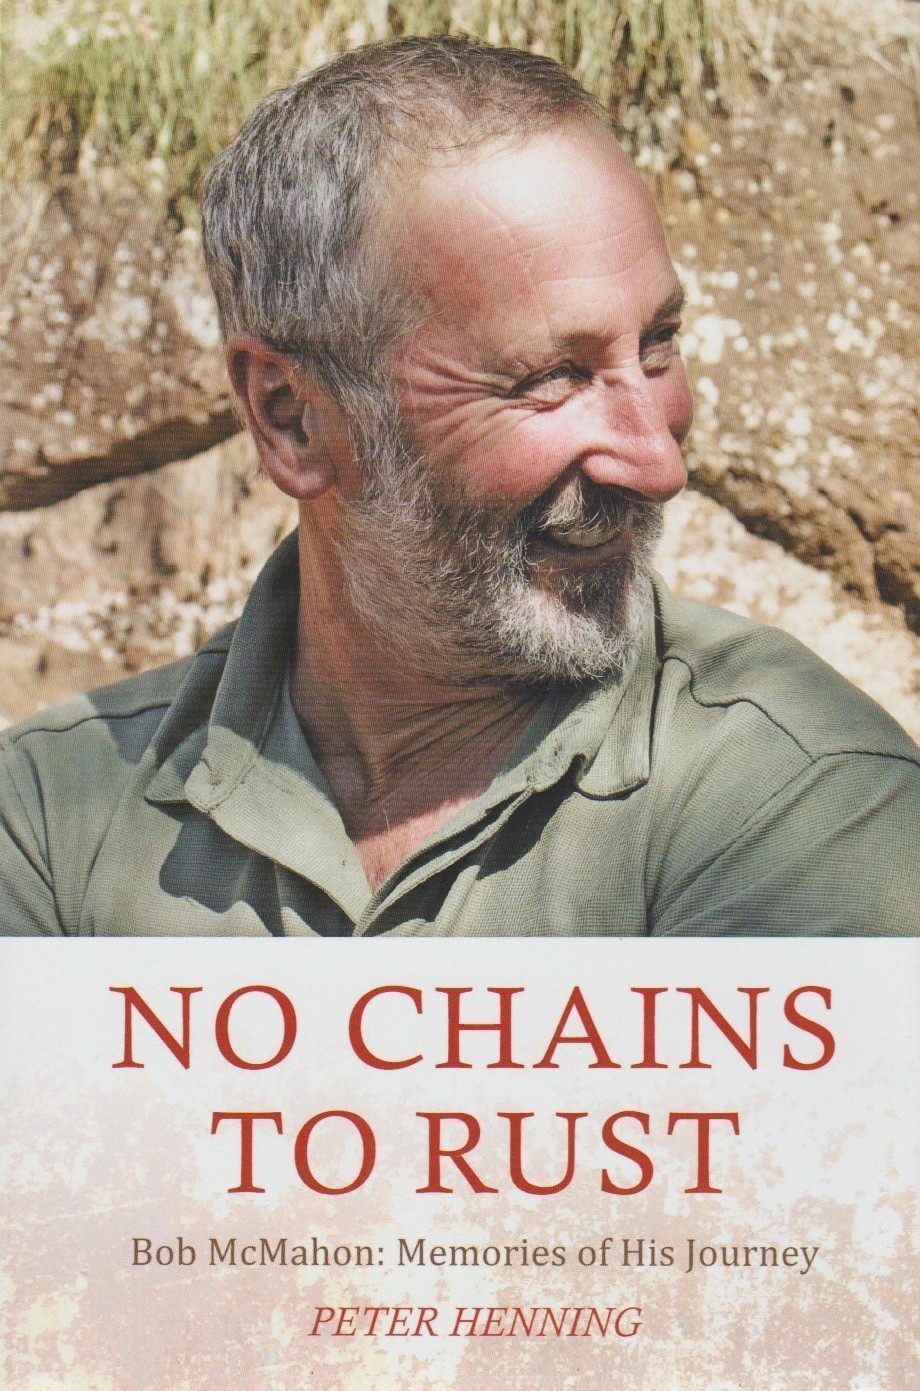 No Chains to Rust - Bob McMahon - Memories of His Journey, hardcover